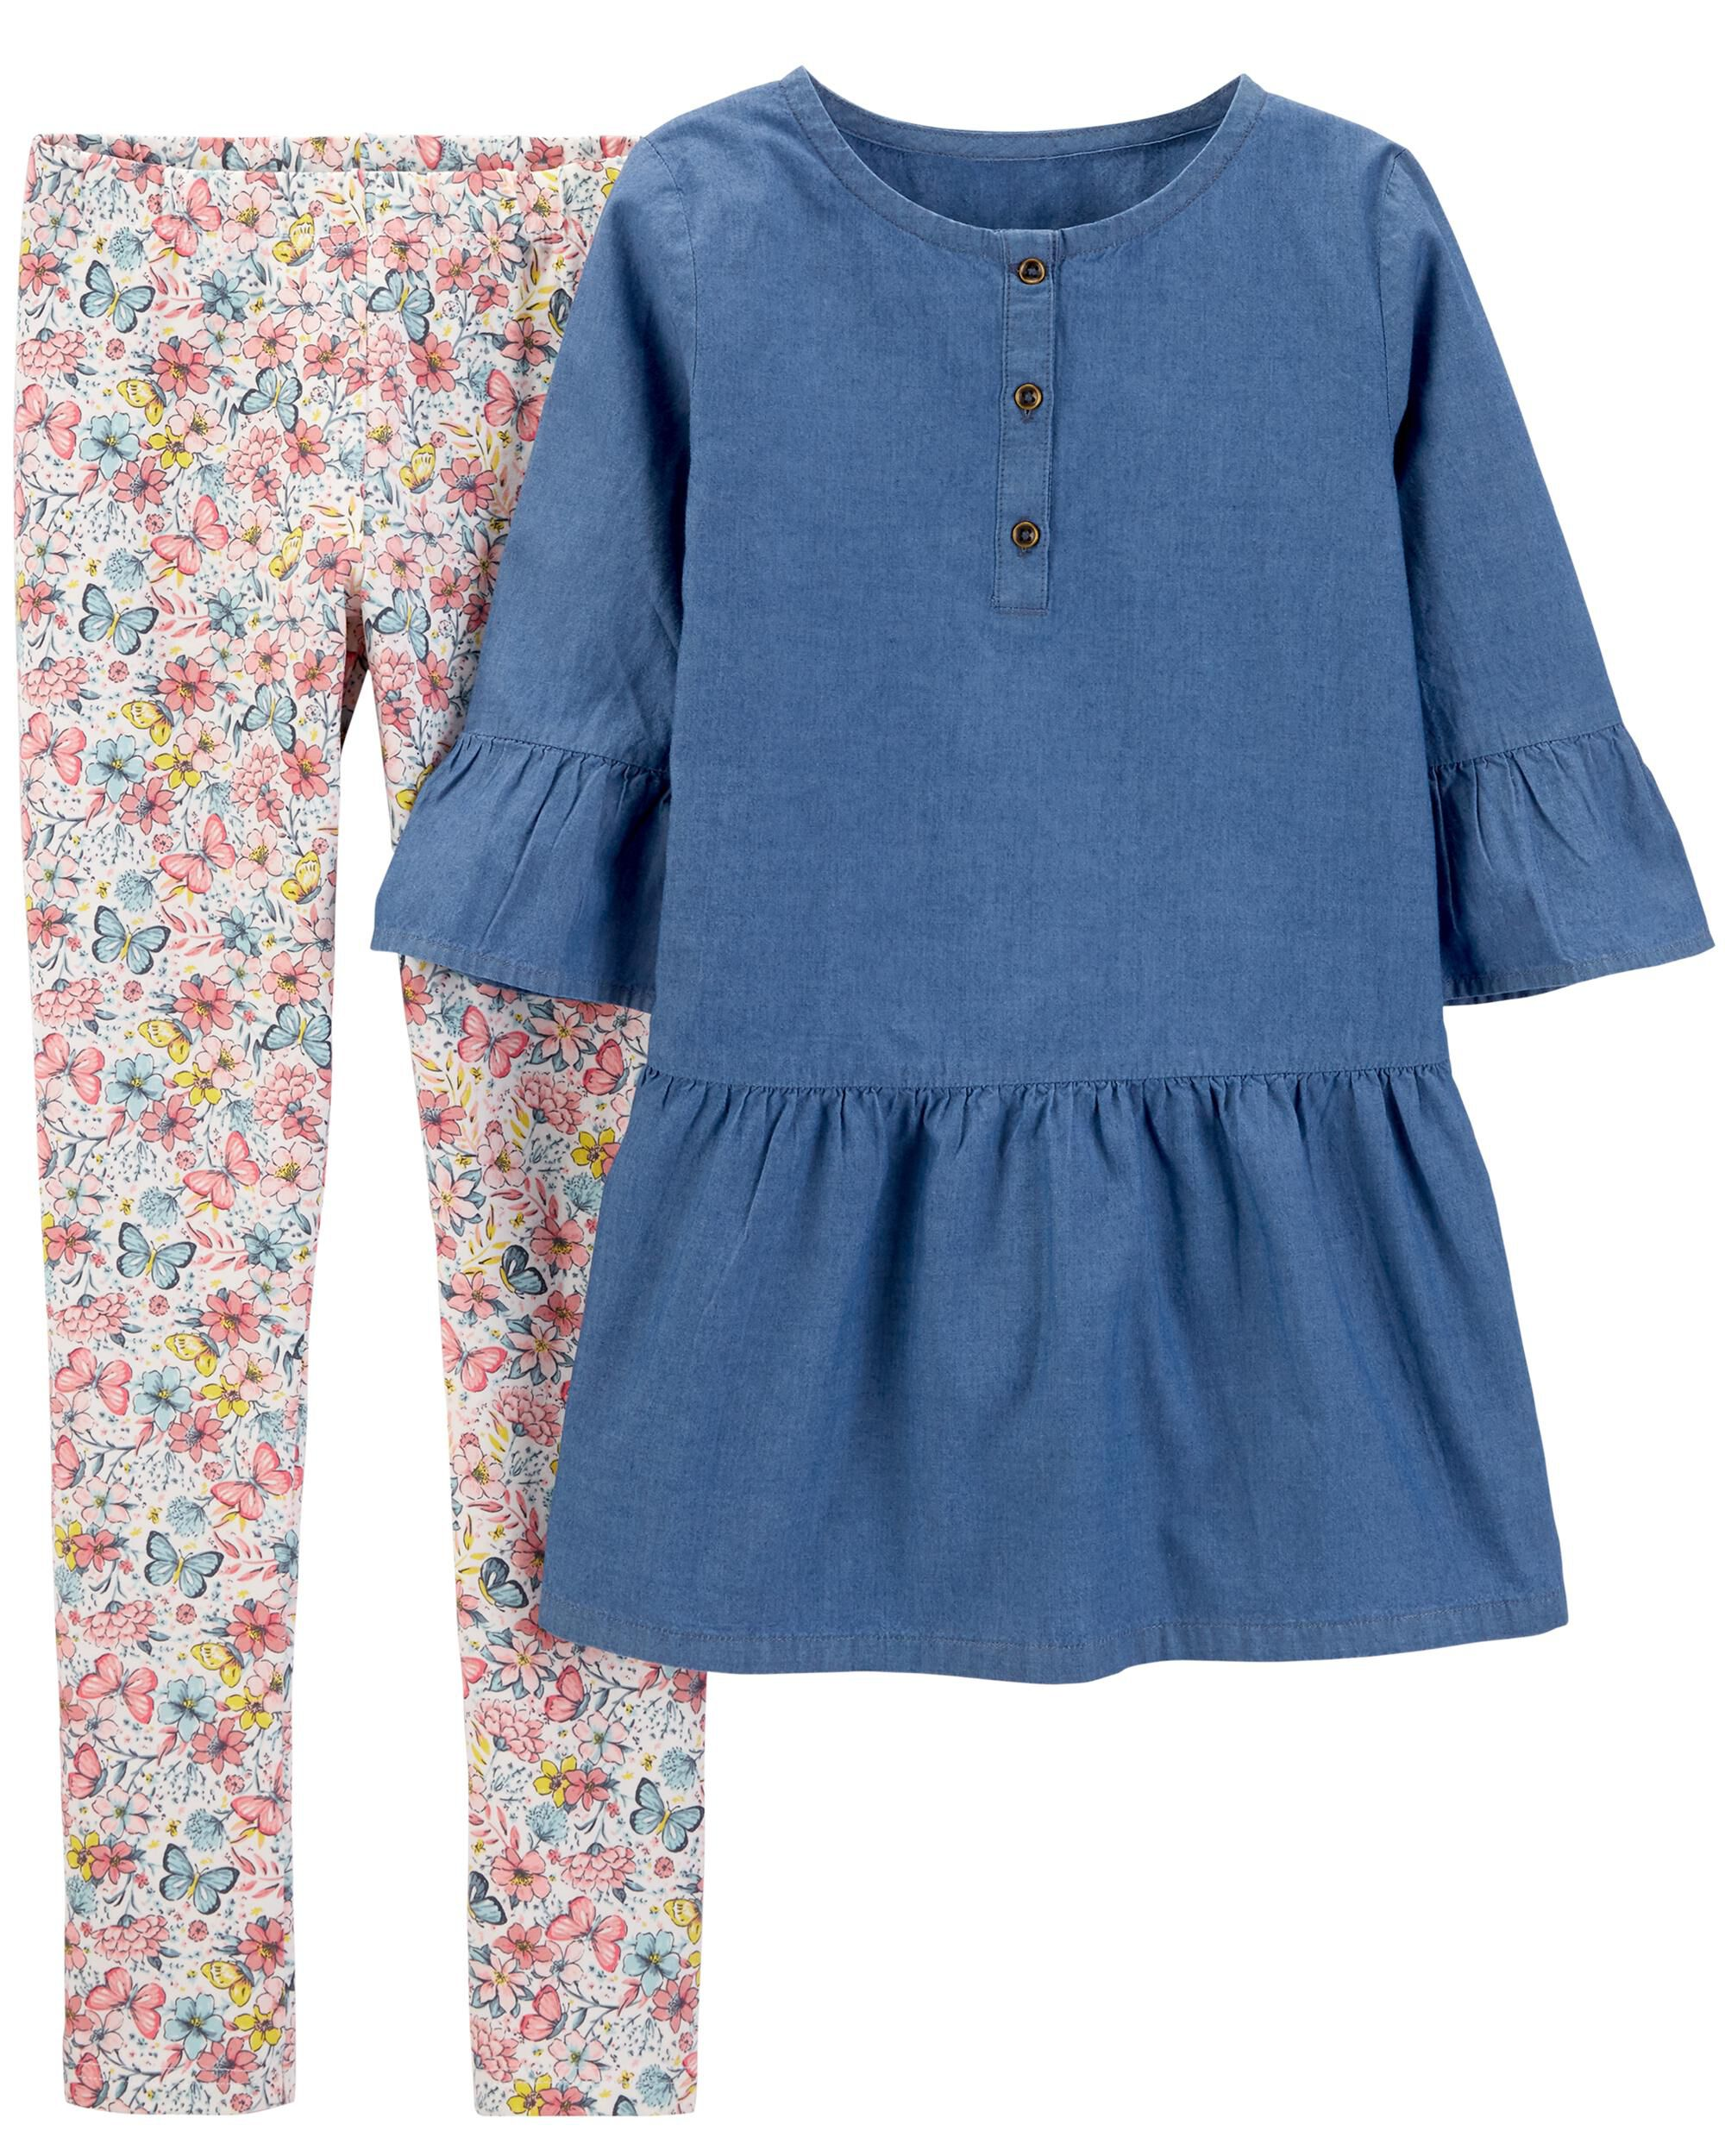 3c59a24a326e 2-Piece Chambray Bell-Sleeve Top & Floral Legging Set | Carters.com